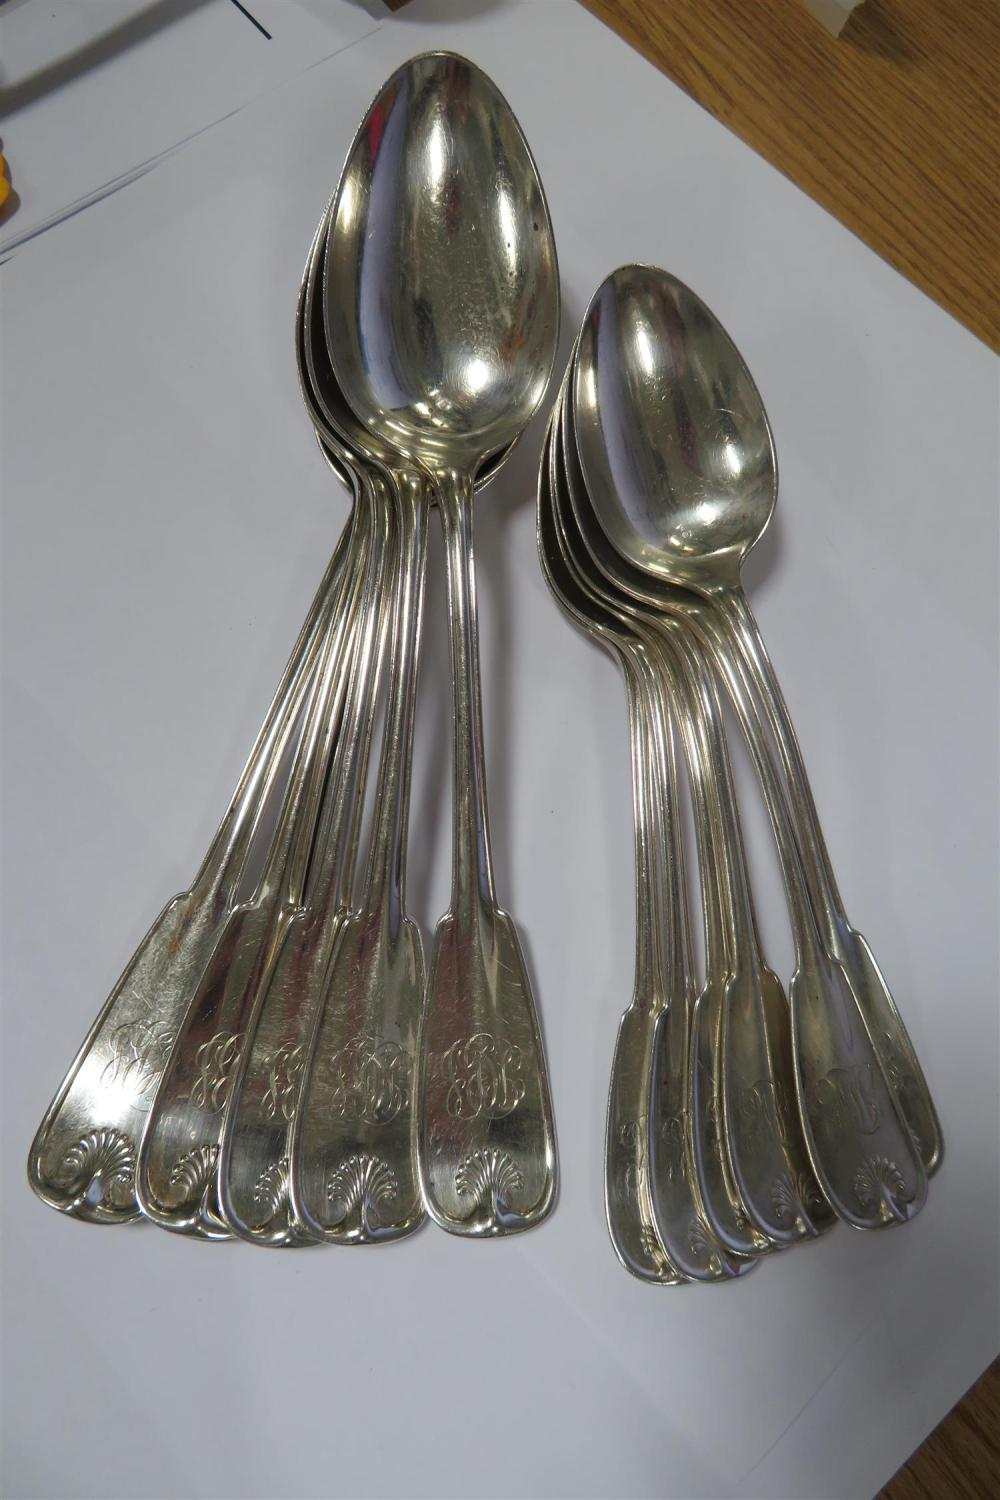 Tiffany & Co Palm pattern silver spoons (12pcs)